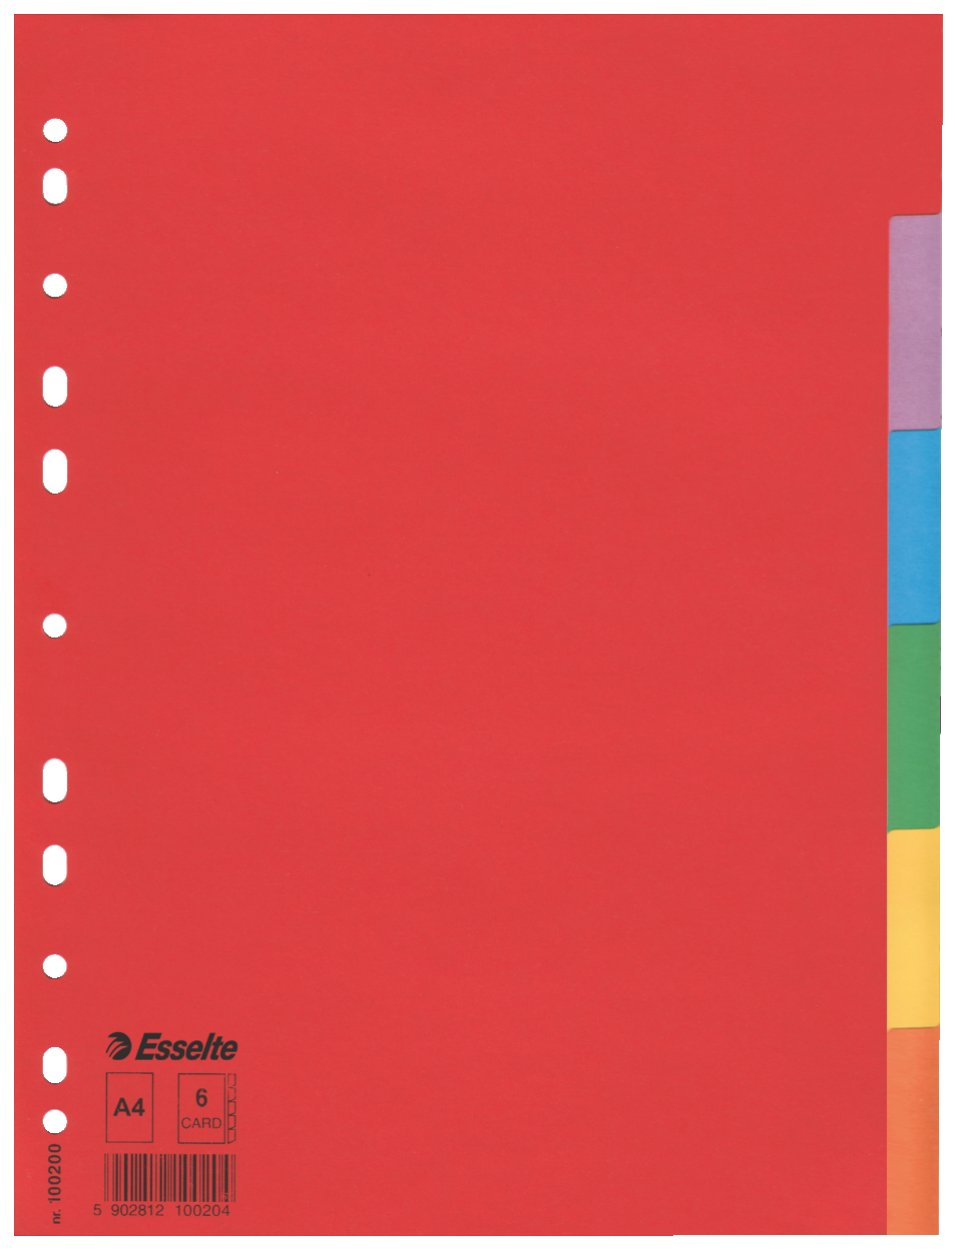 Esselte Intercalare Cartoncino riciclato Rinforzo in mylar Formato A4 100193 Multicolore